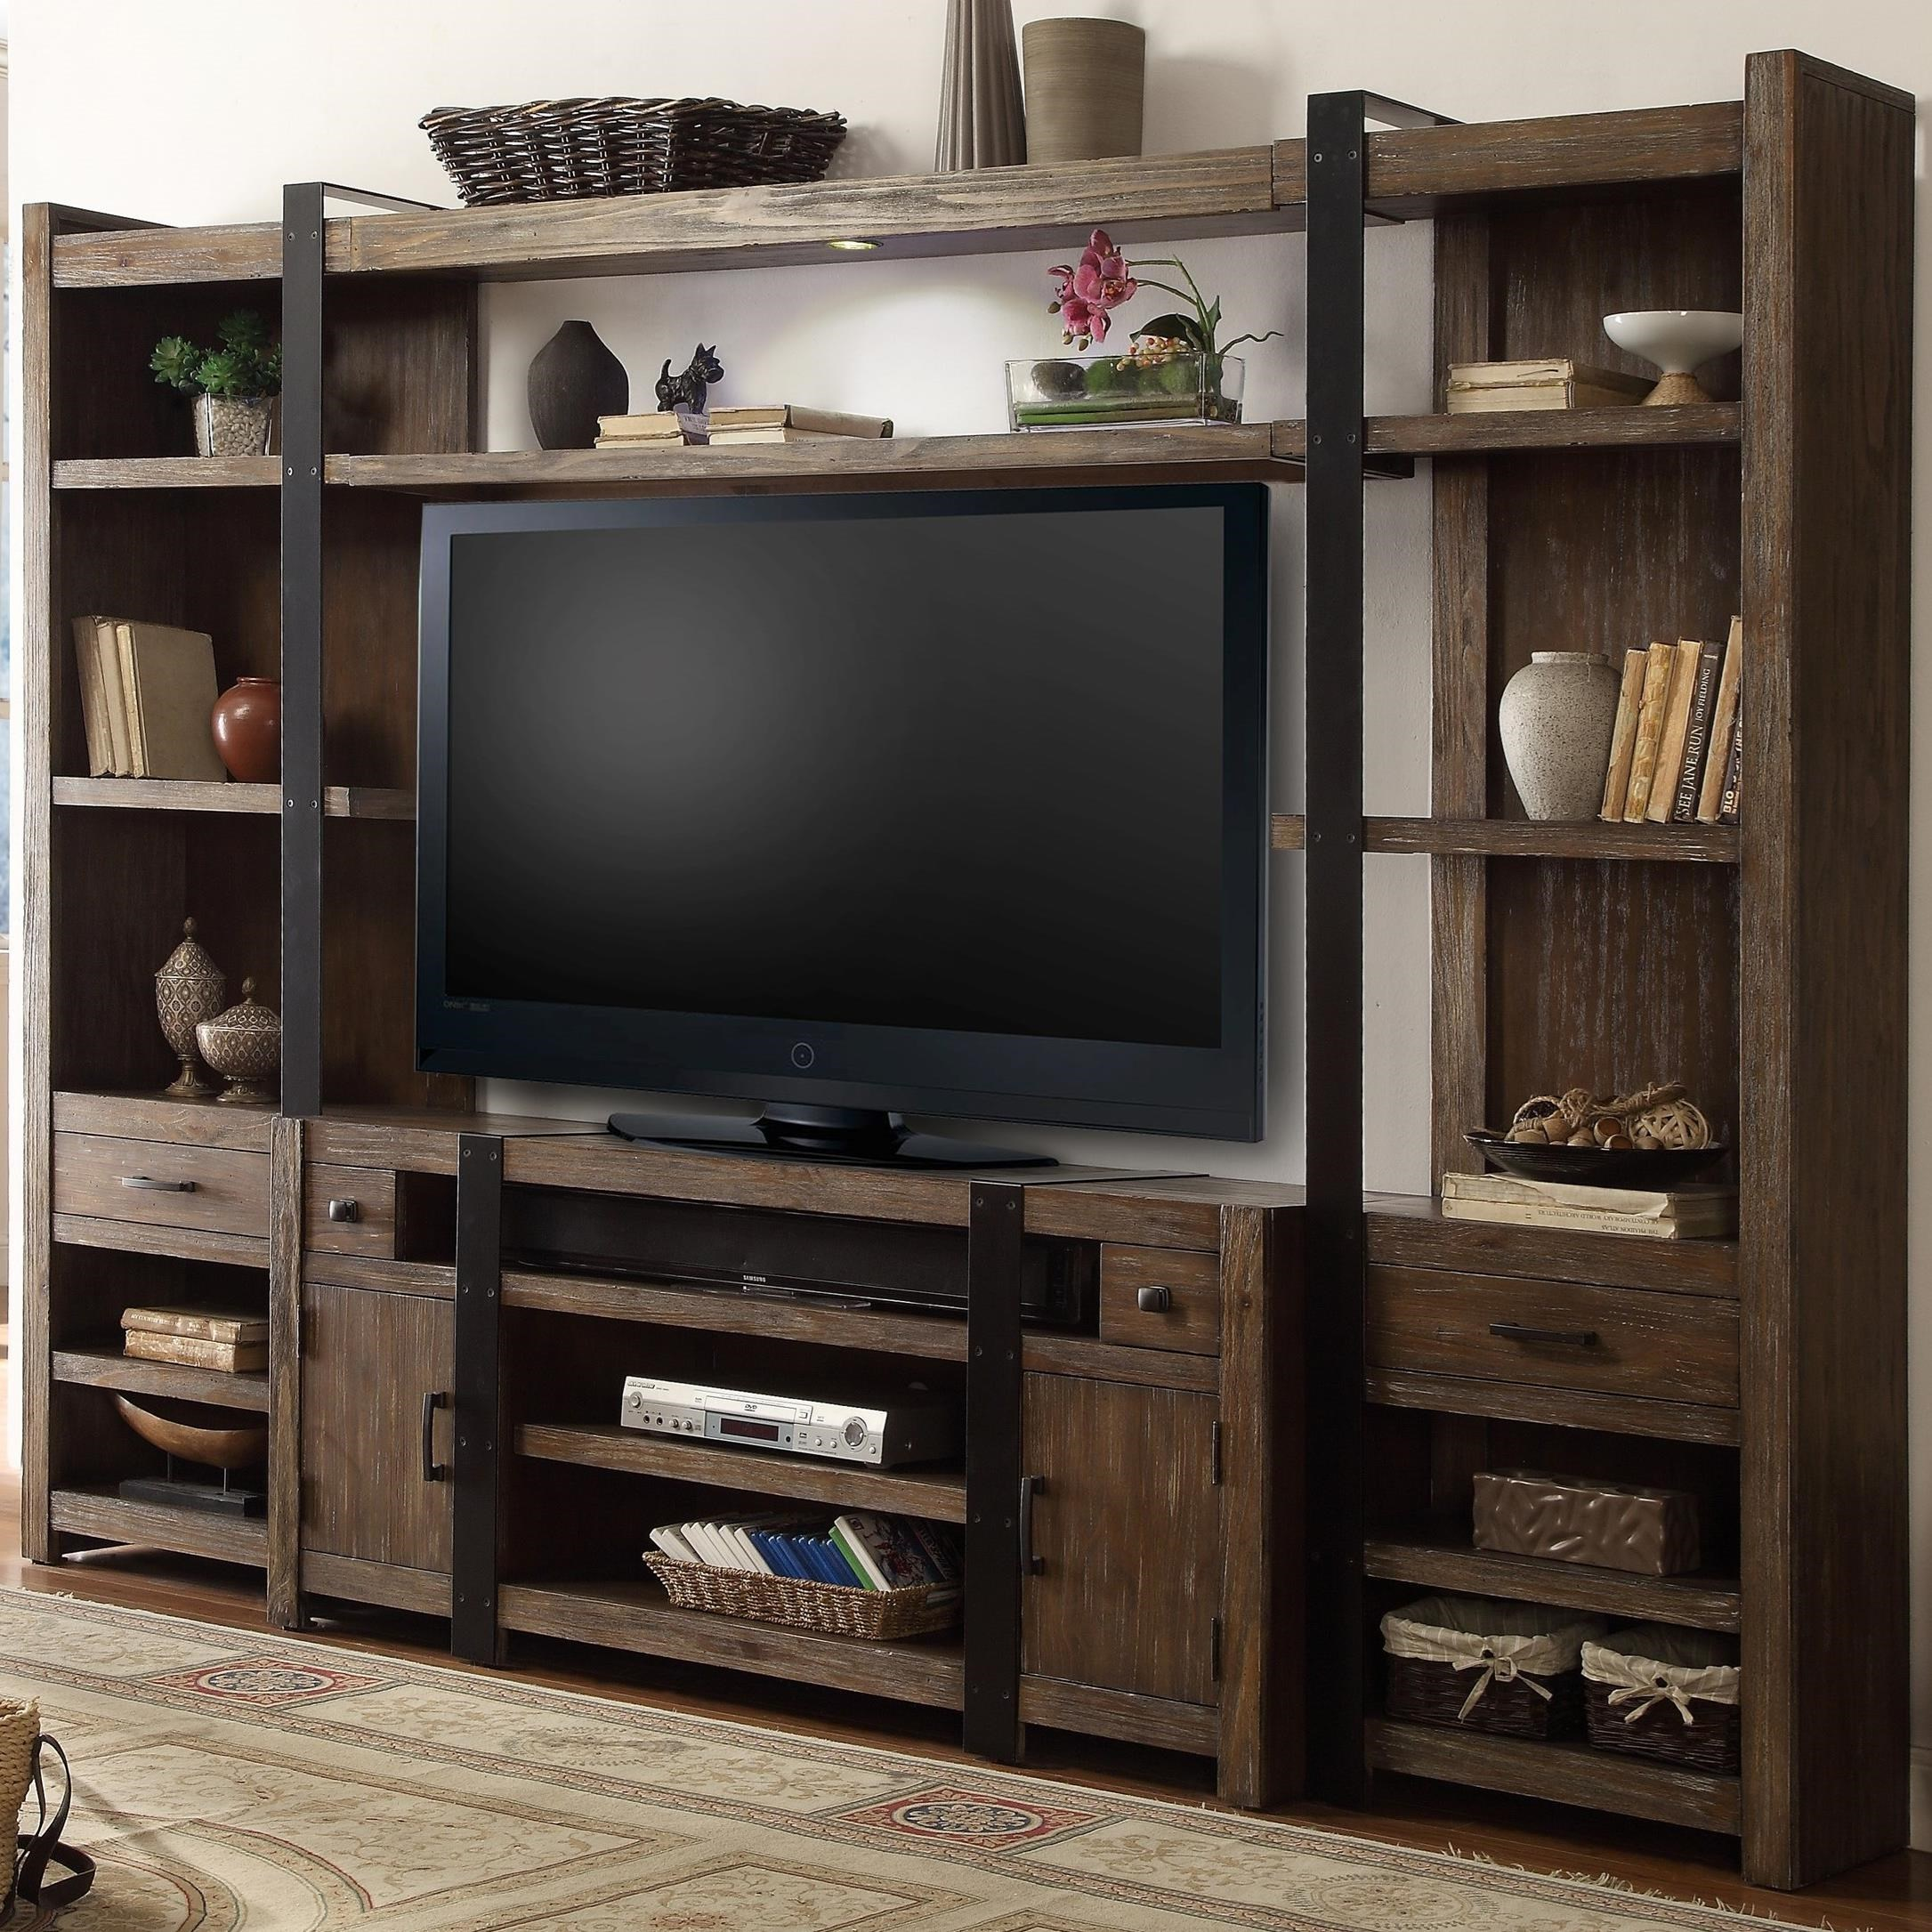 Parker House Tribeca 4 Piece Entertainment Wall With LED Lighting